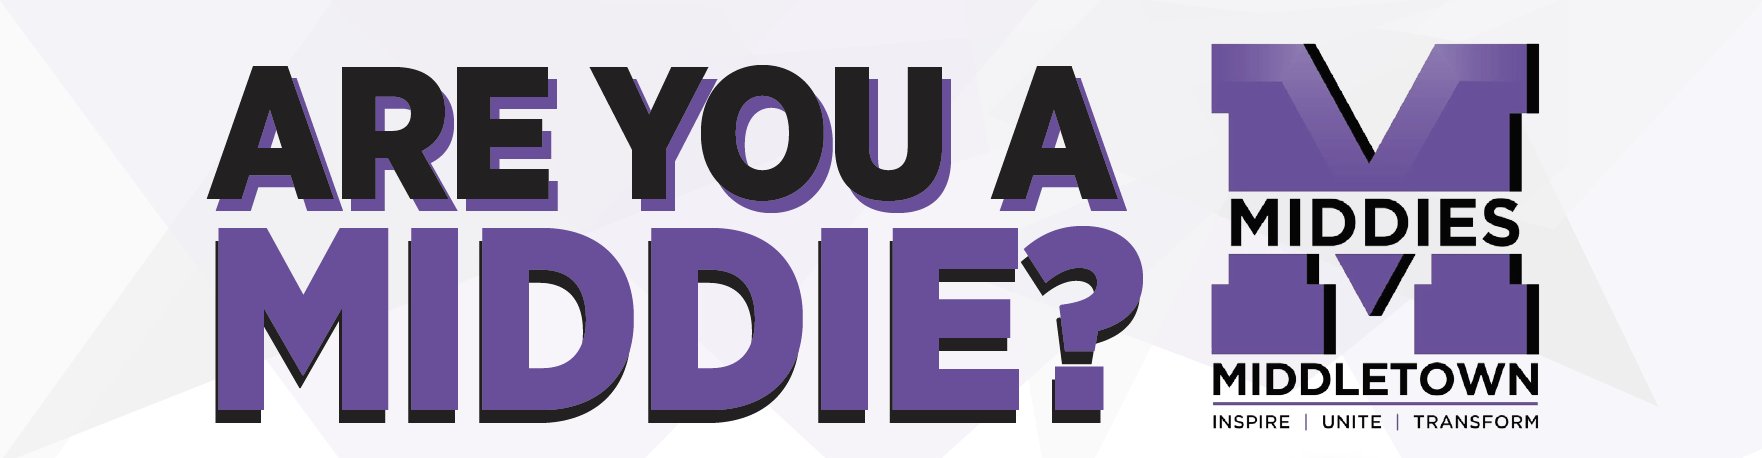 Are you a Middie?